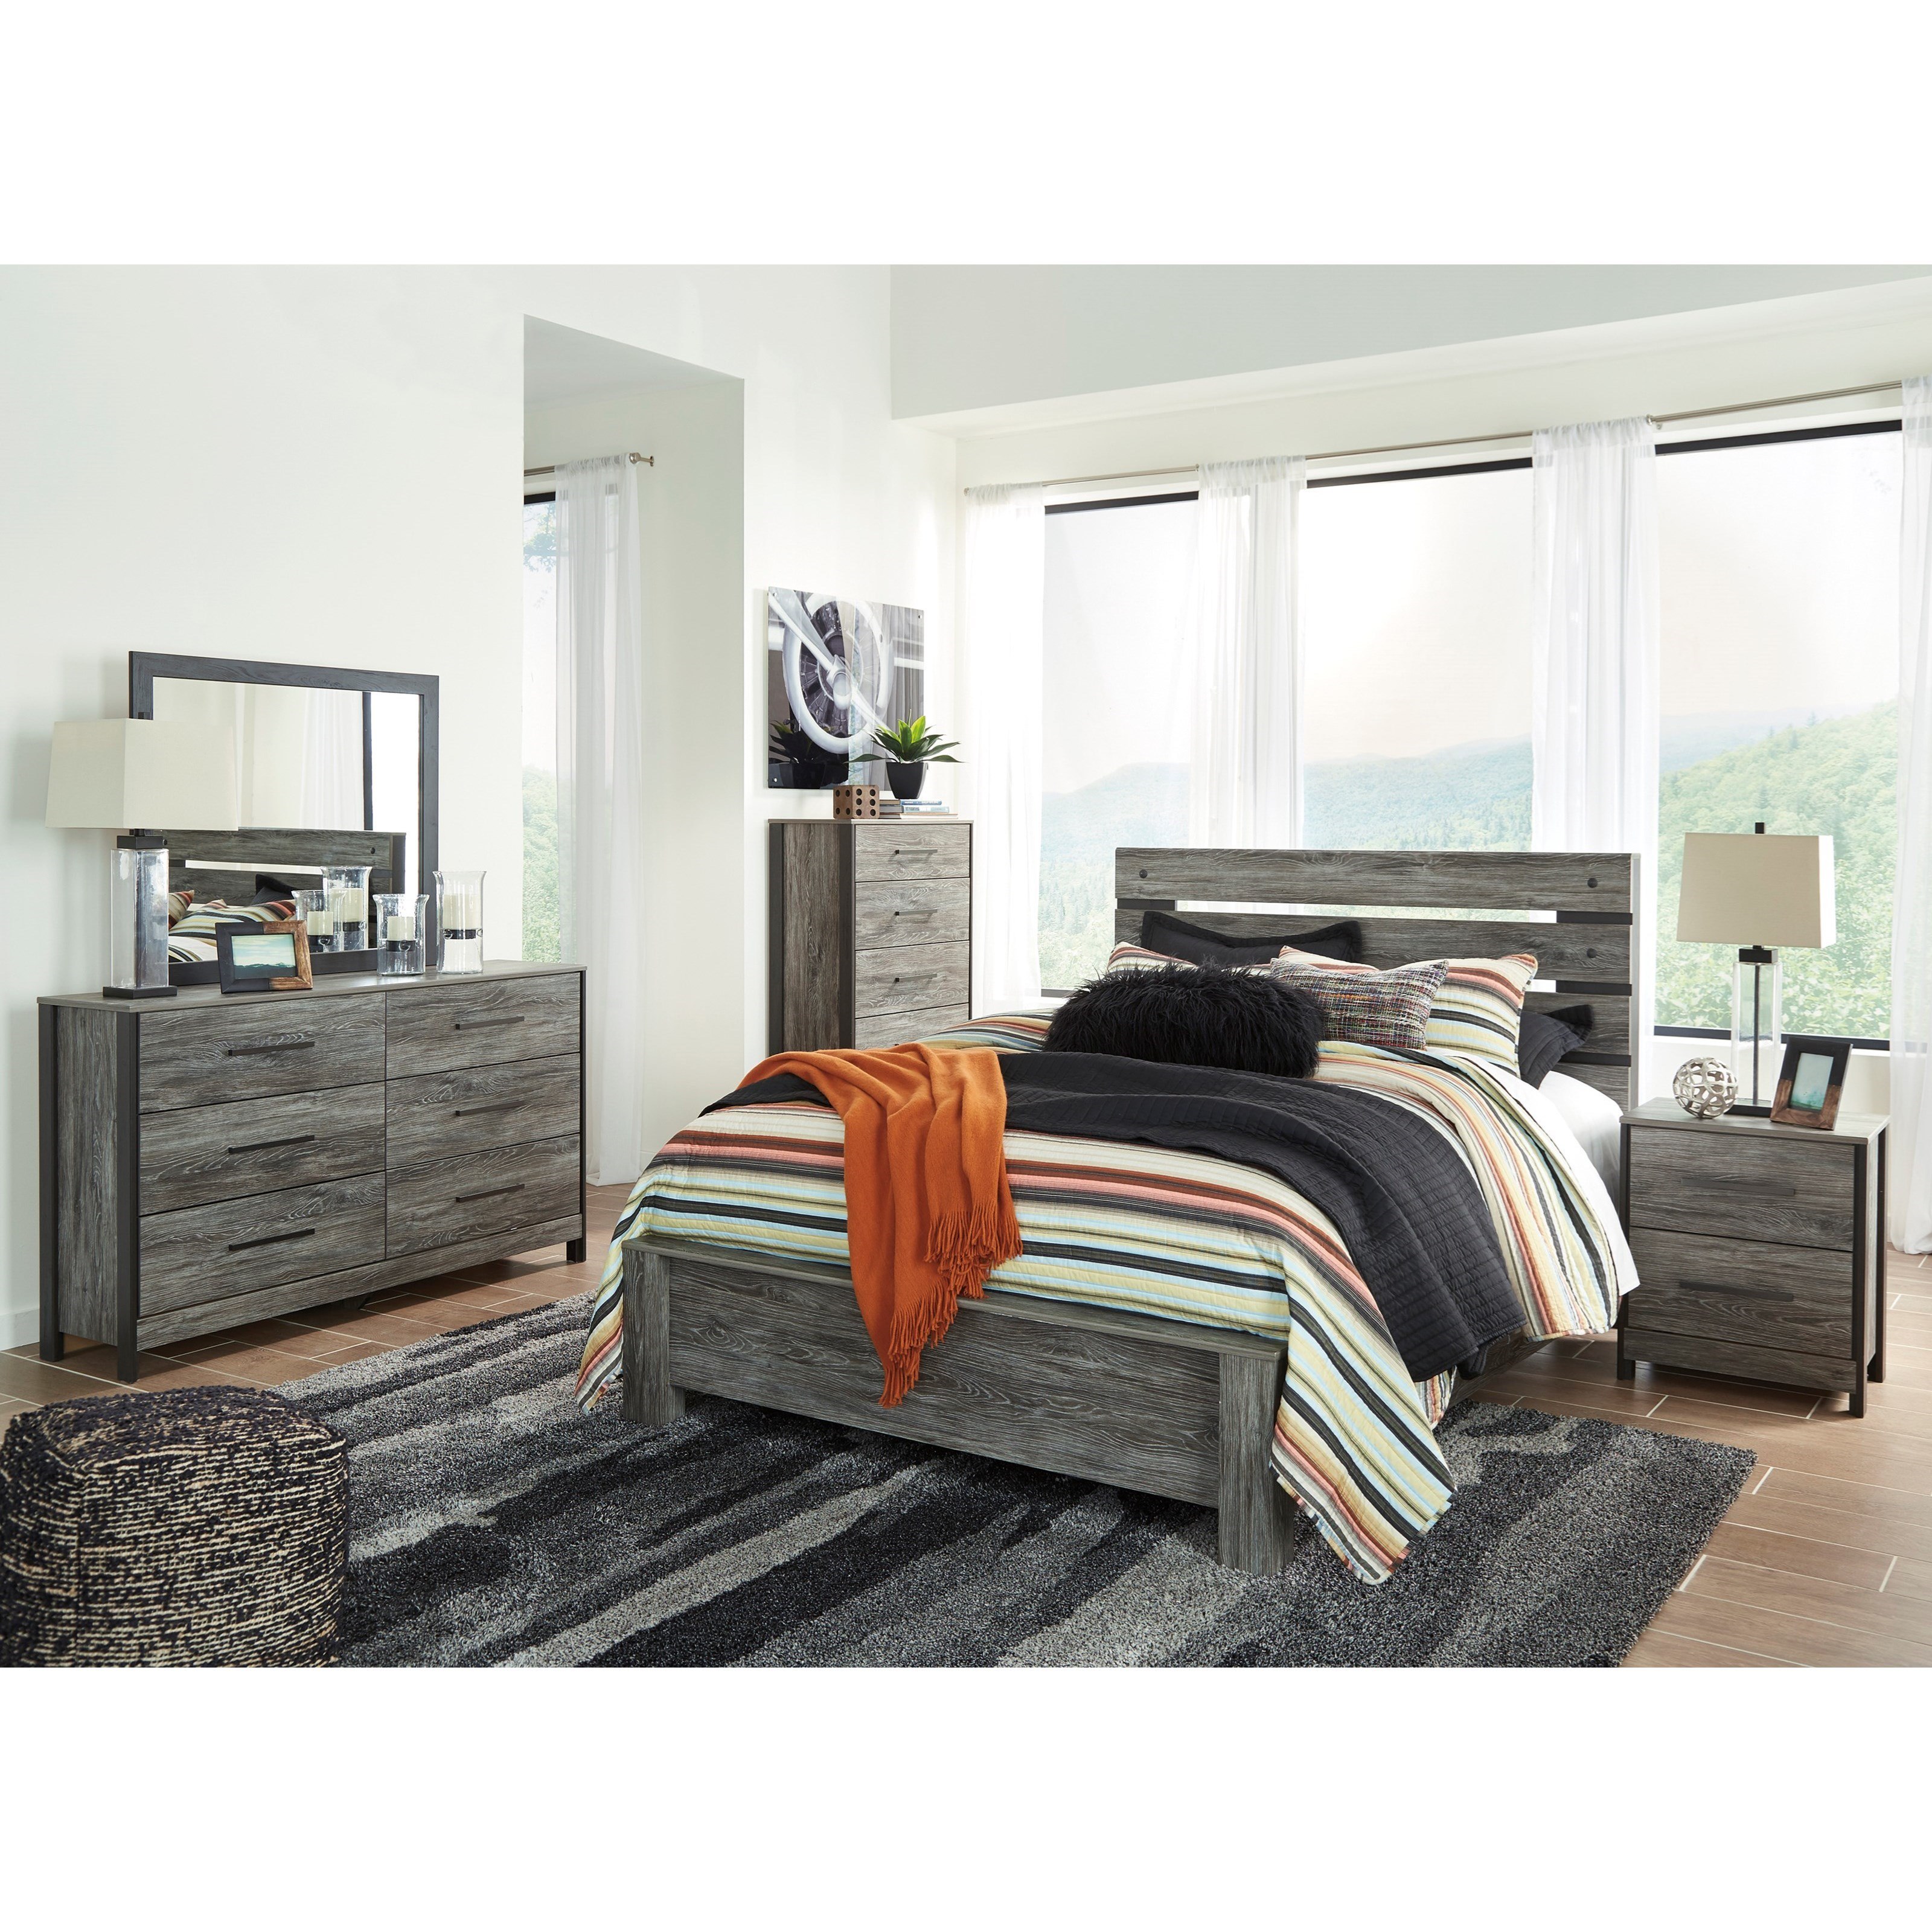 Signature Design By Ashley Cazenfeld Queen Panel Bed With